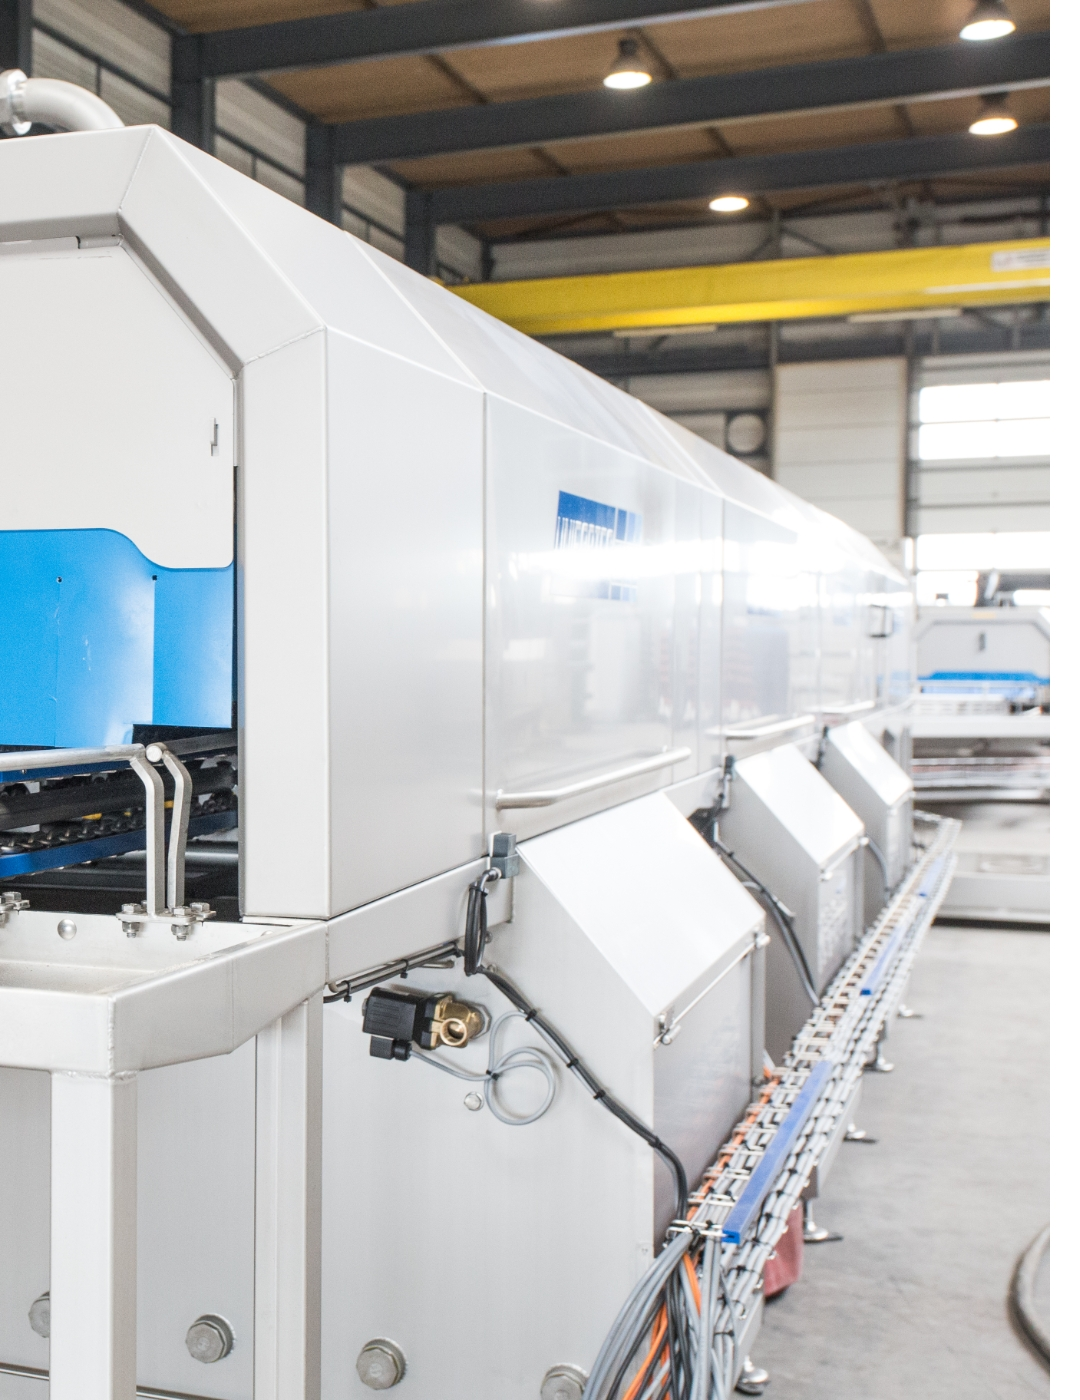 Washer for cleaning plastic product carriers in all sizes and variations